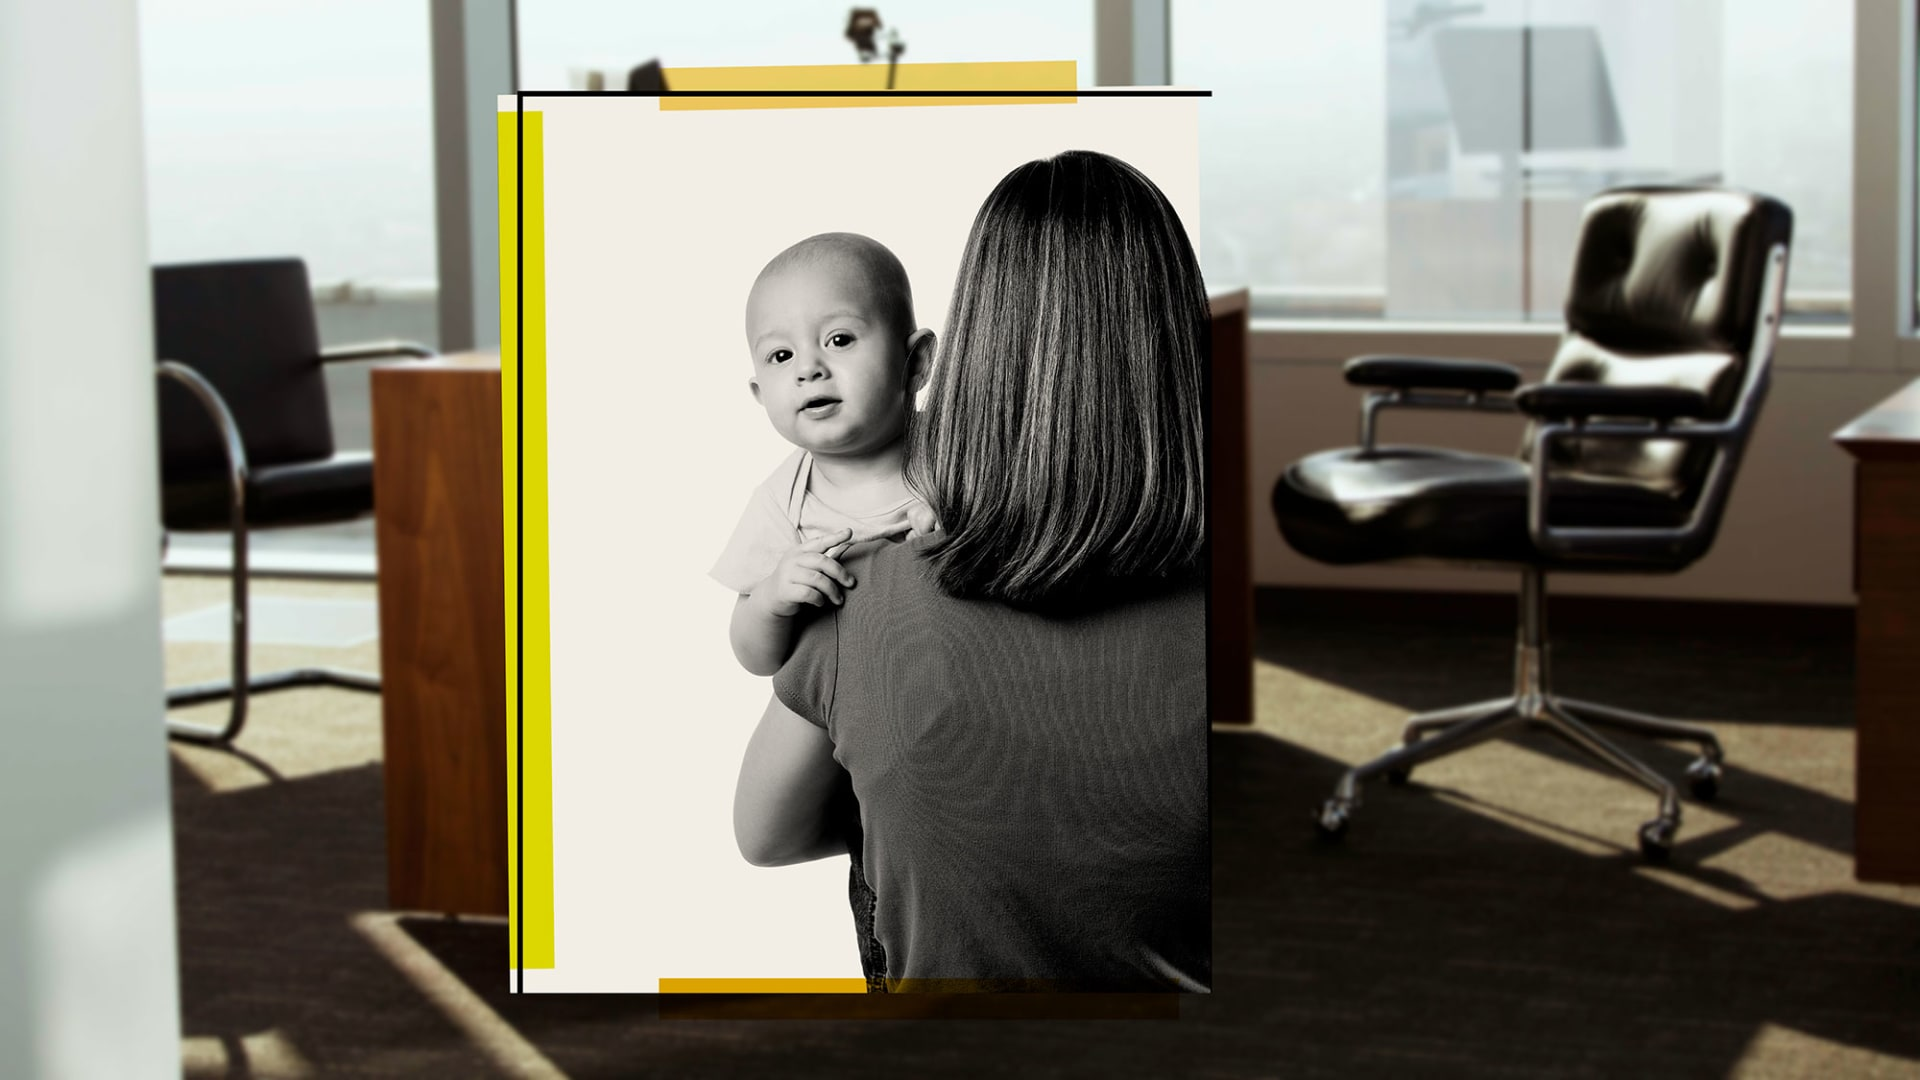 The Pandemic Made It Impossible for Many Moms to Work. Here Are 4 Ways to Get Them Back